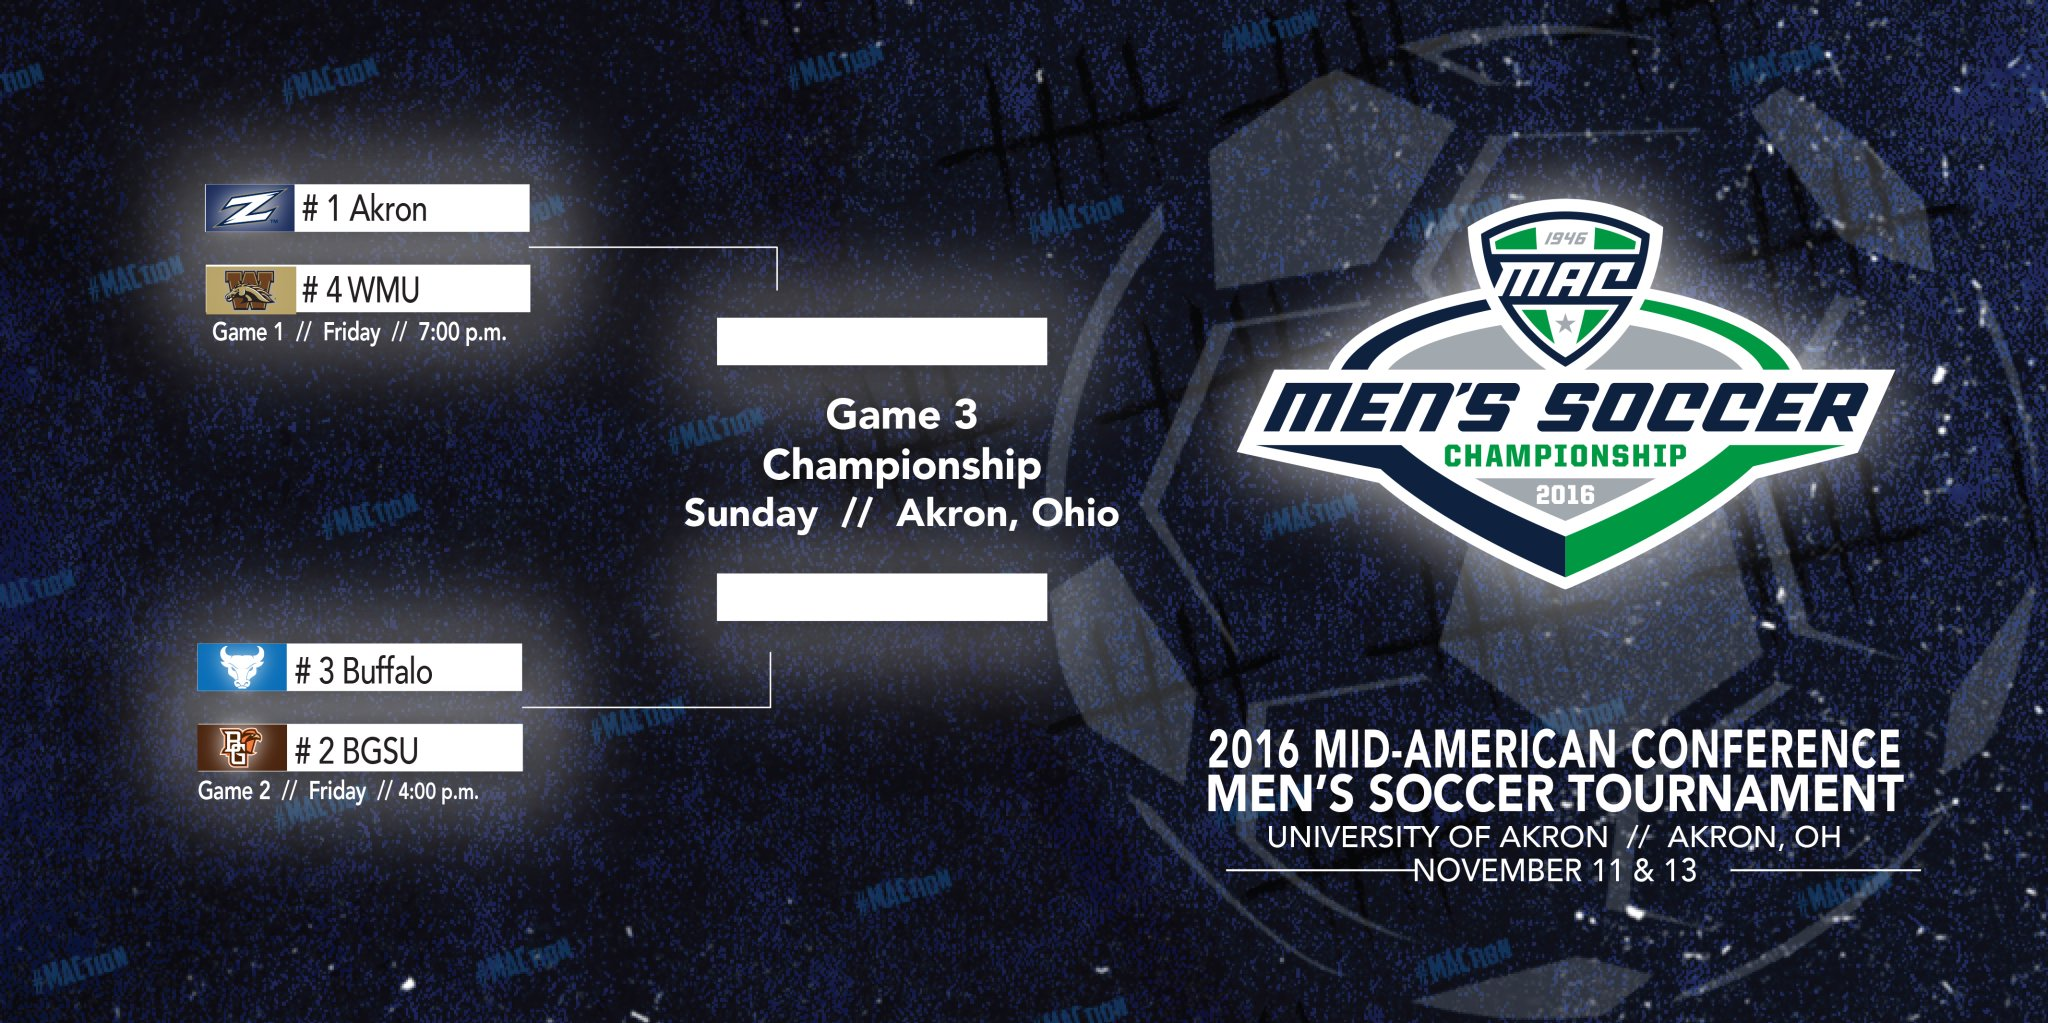 The bracket for the 2016 Mid-American Conference men's soccer tournament.